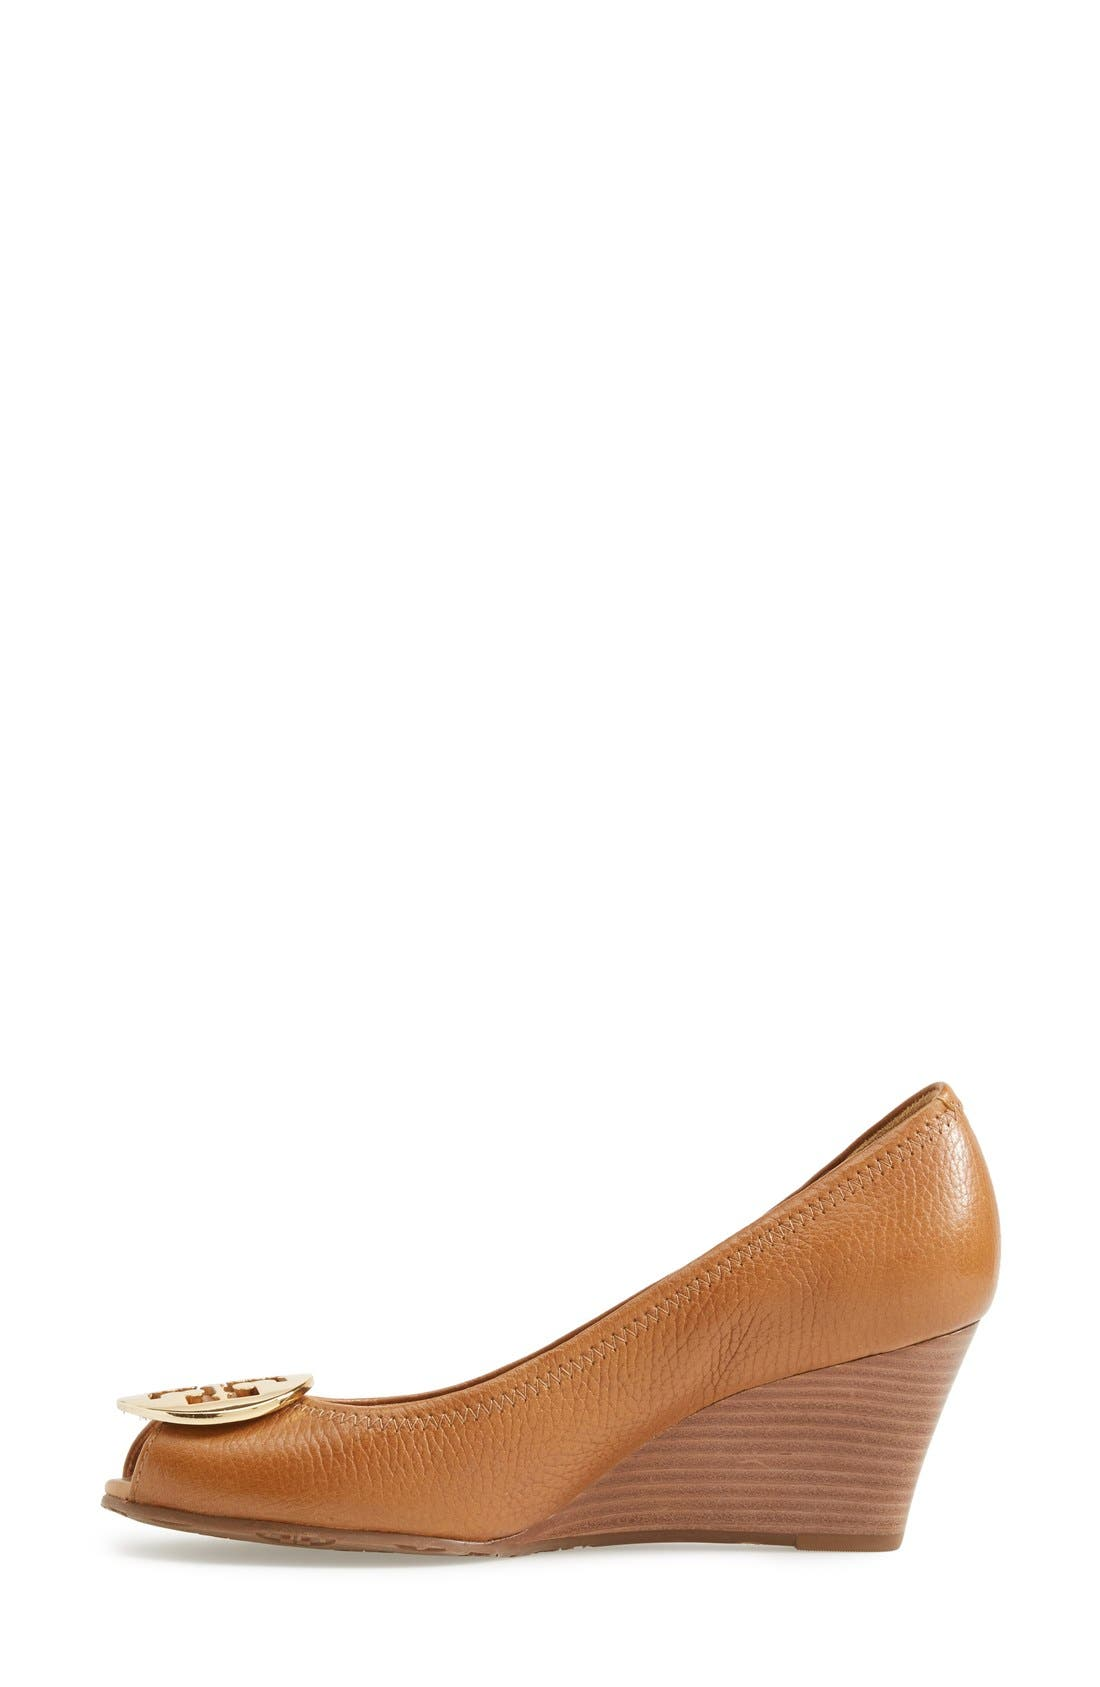 Alternate Image 2  - Tory Burch 'Sally 2' Peep Toe Wedge Pump (Women)